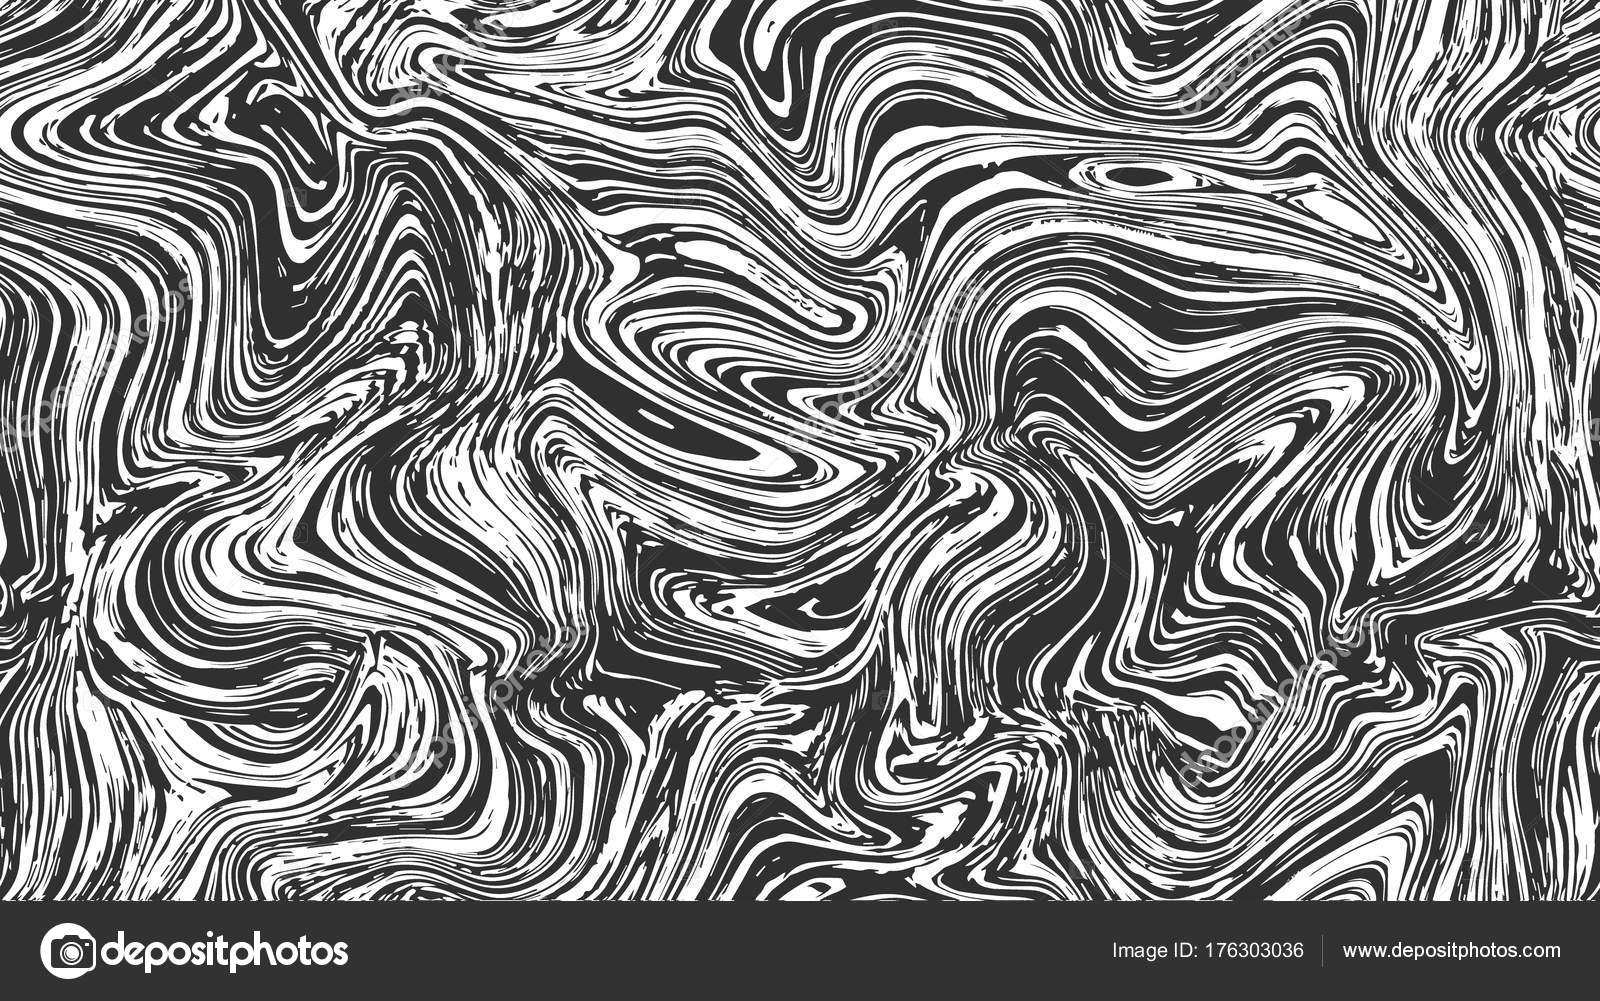 Cool Wallpaper Marble Trippy - depositphotos_176303036-stock-illustration-marble-texture-seamless-background-abstract  Image_184012.jpg